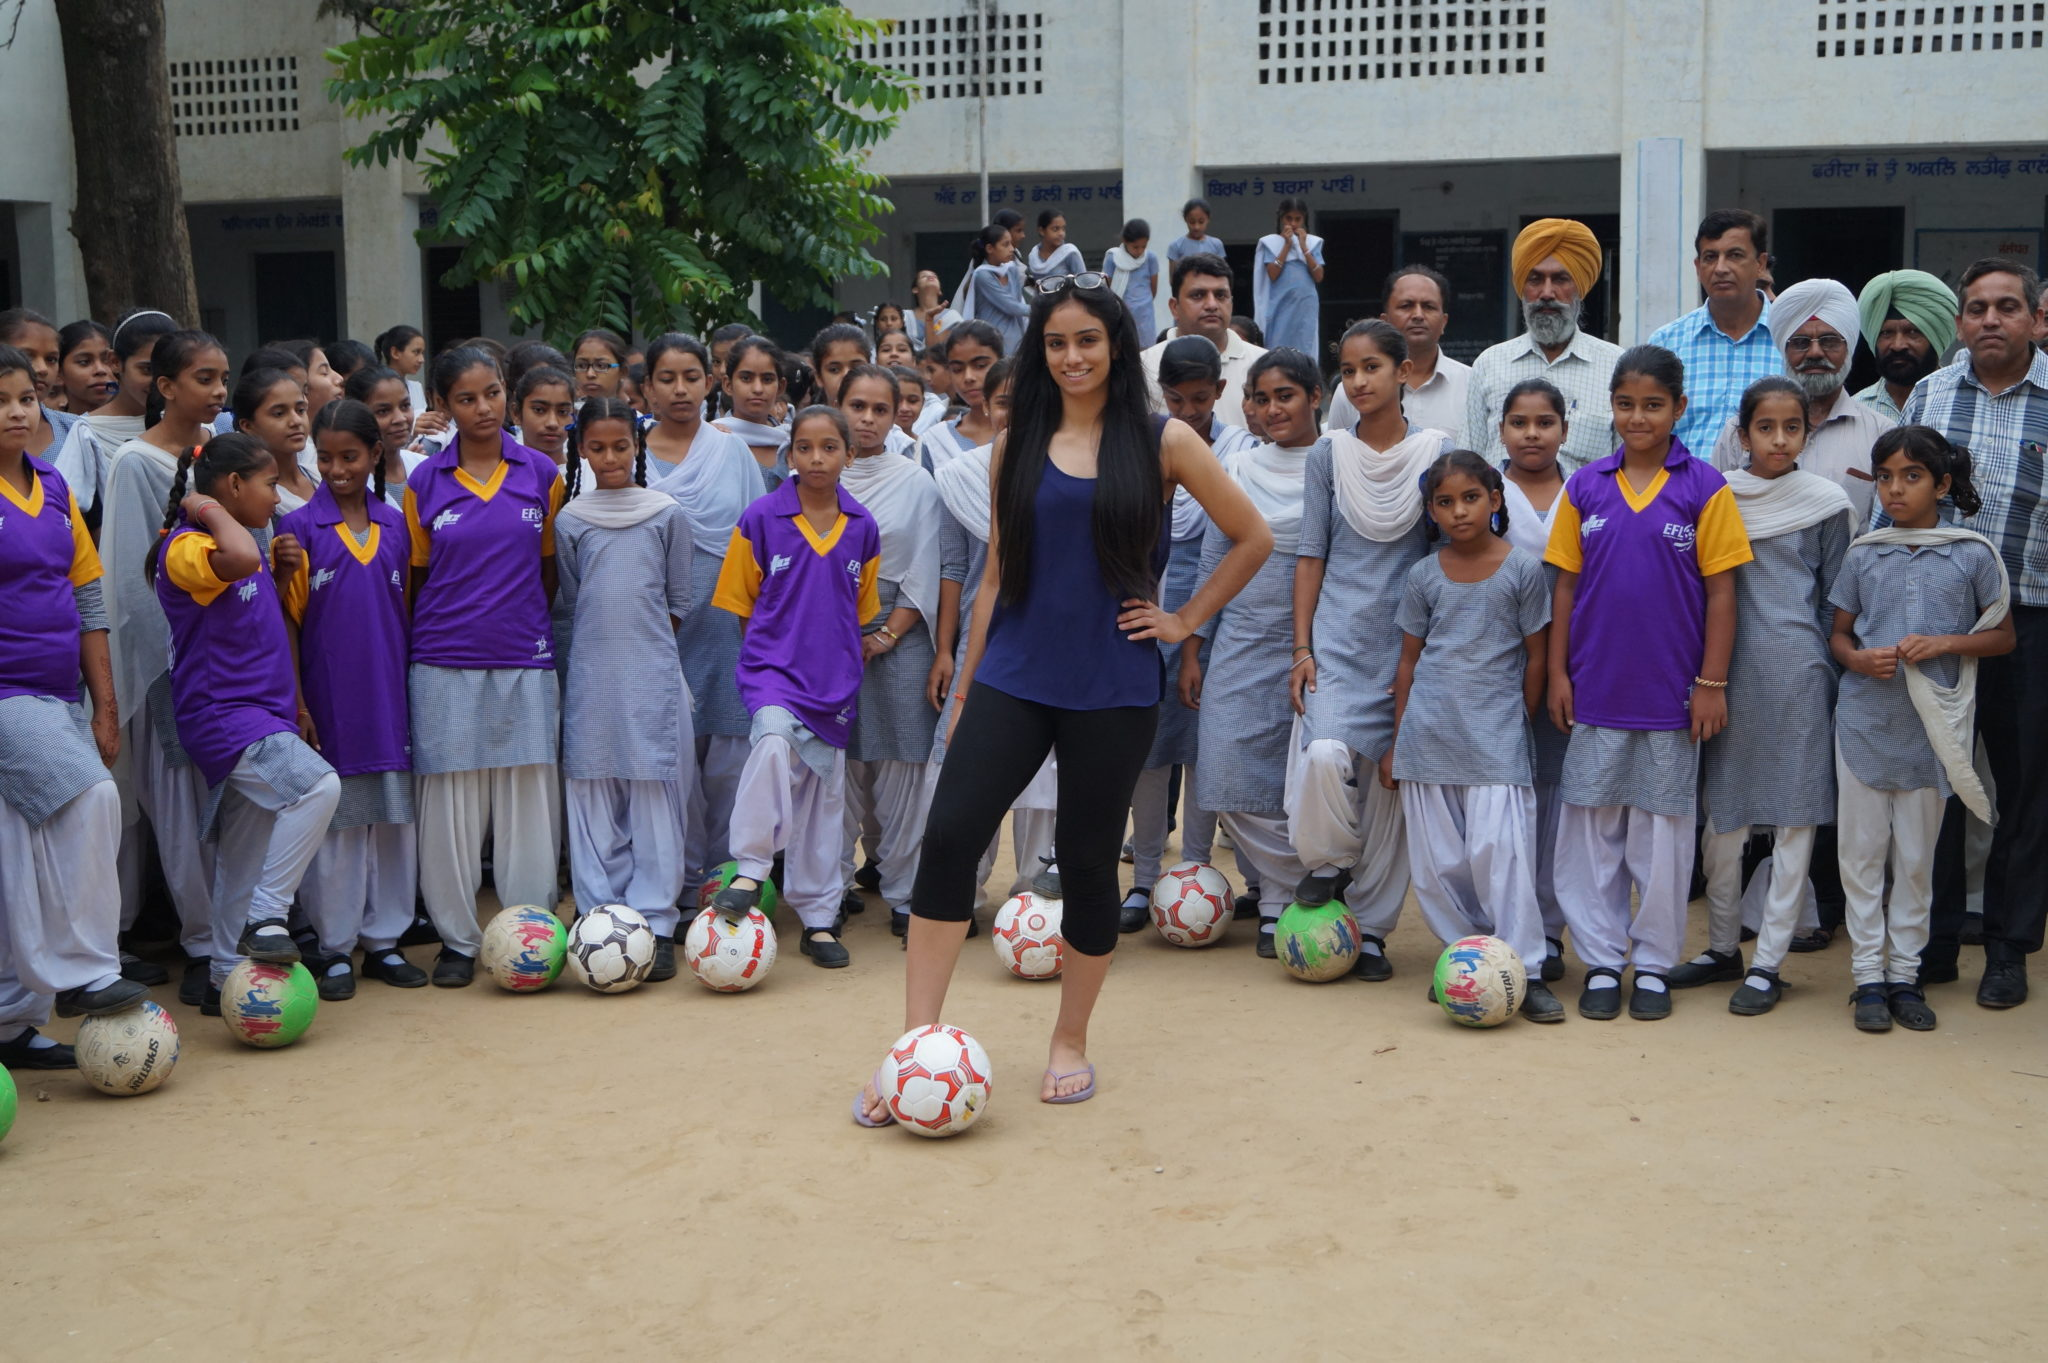 Harleen Kaur opening a girls sports club in India